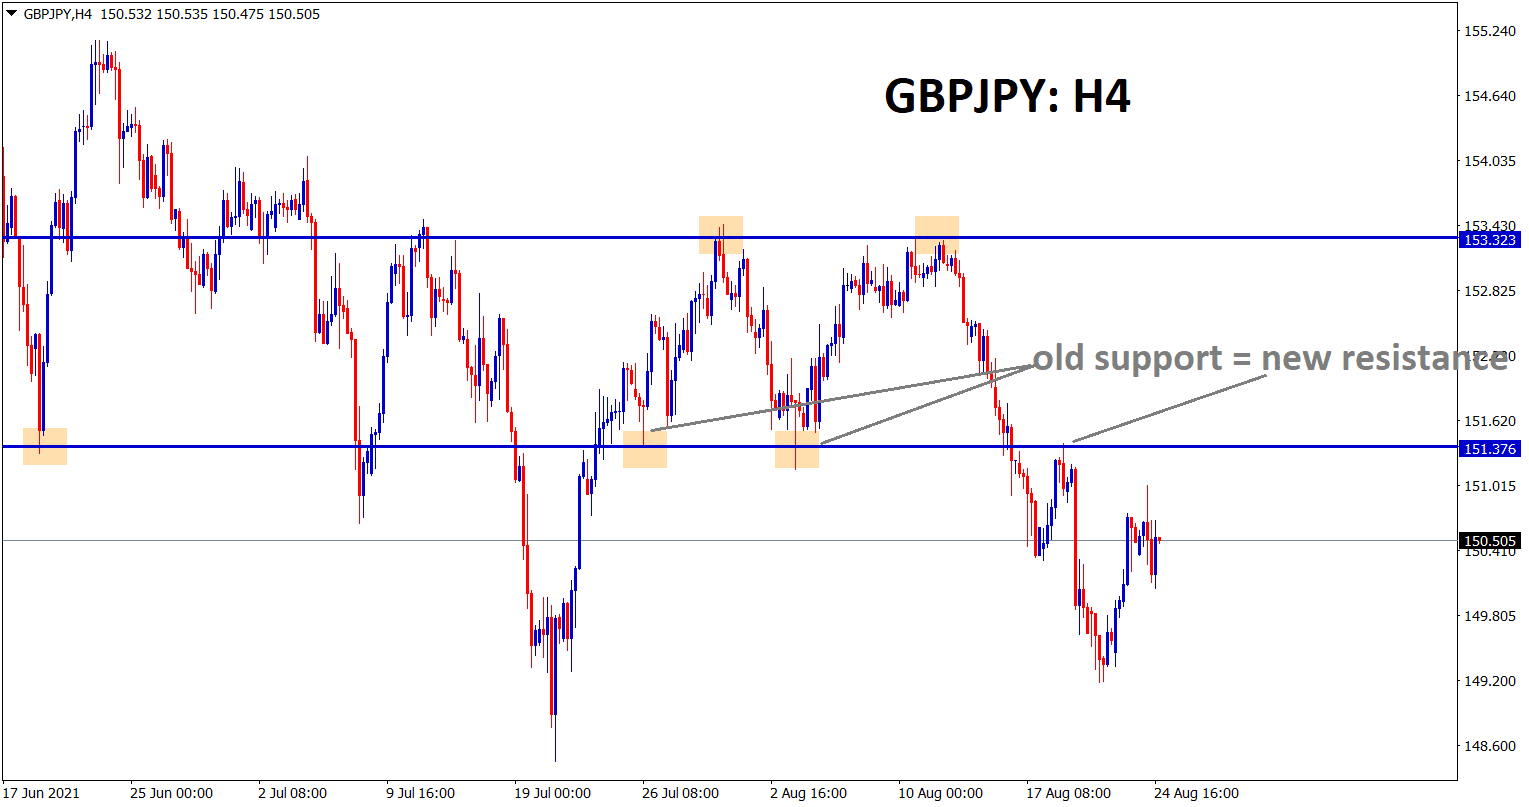 GBPJPY fallen down after retesting the previous support area which acting now as new resistance